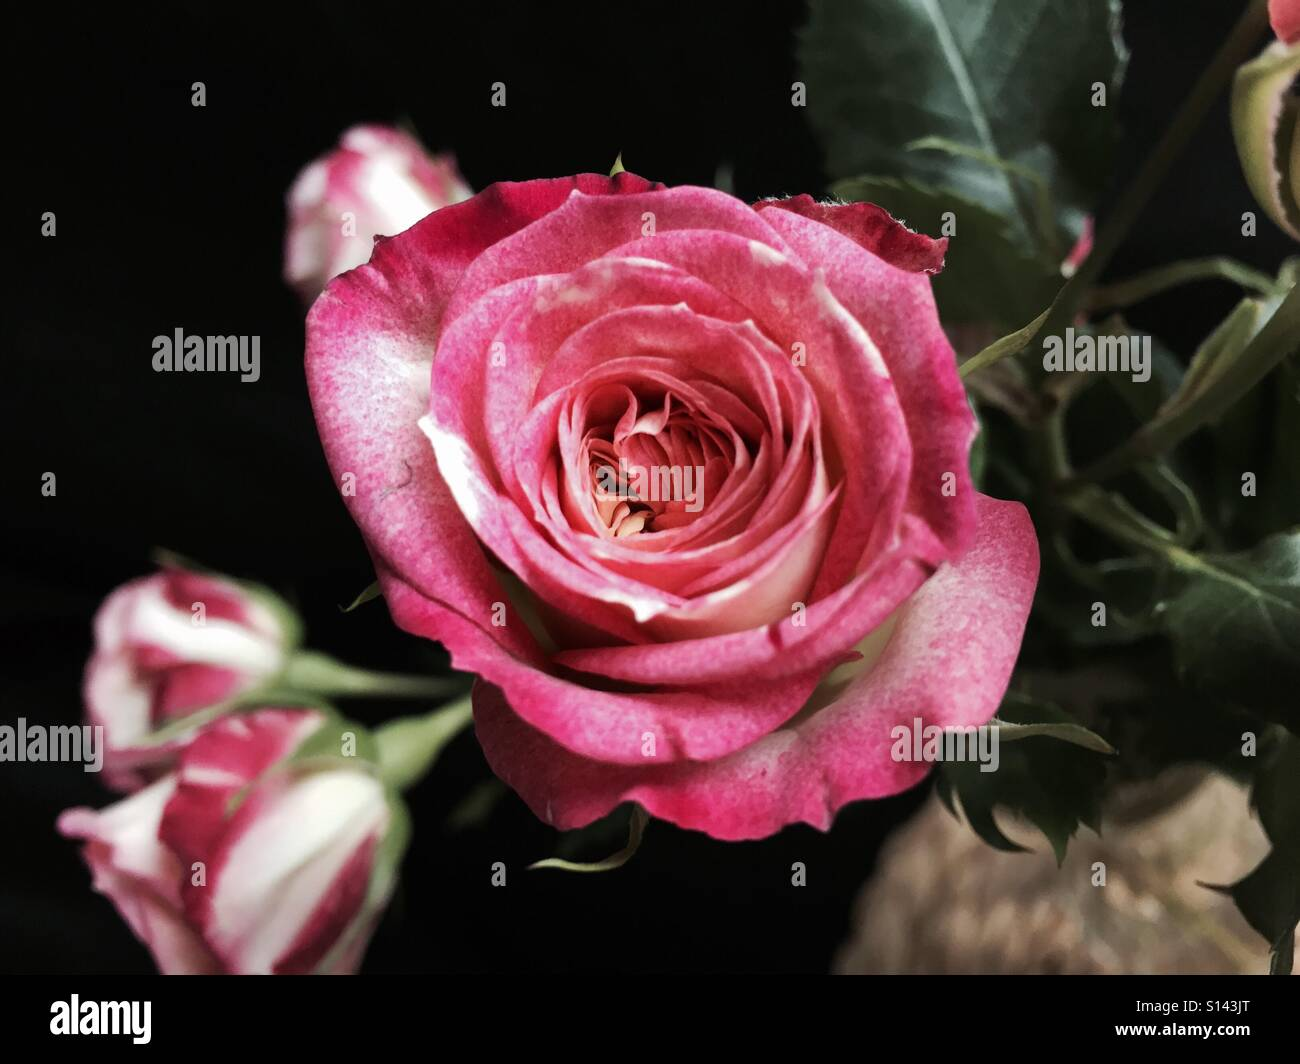 Pink And White Roses With A Black Background Stock Photo 310491968